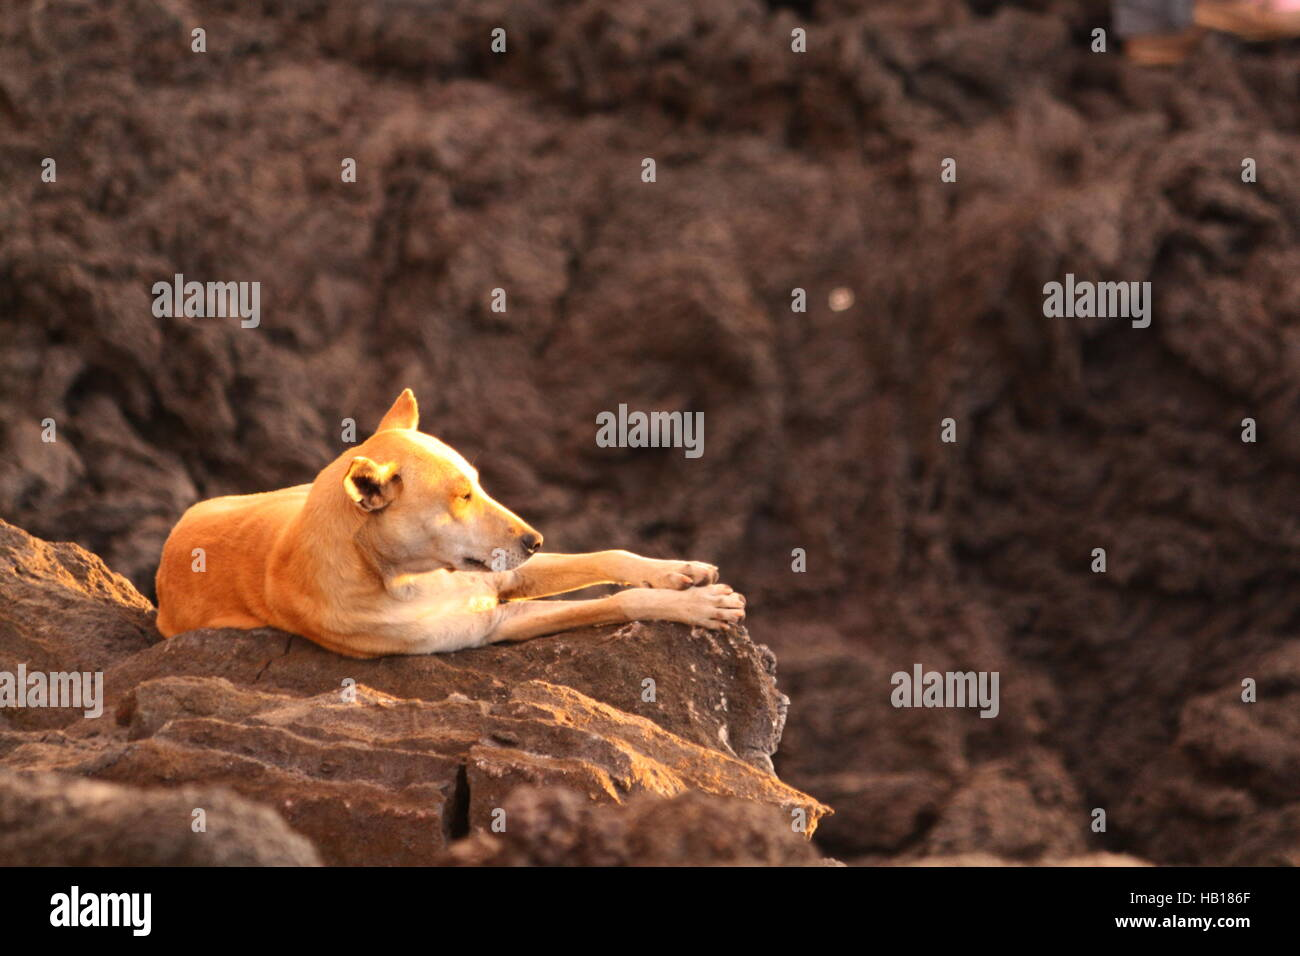 Stray yellow dog lies on lava formation in sun. Lava field in background. Guatemala, Volcano Pacaya. - Stock Image